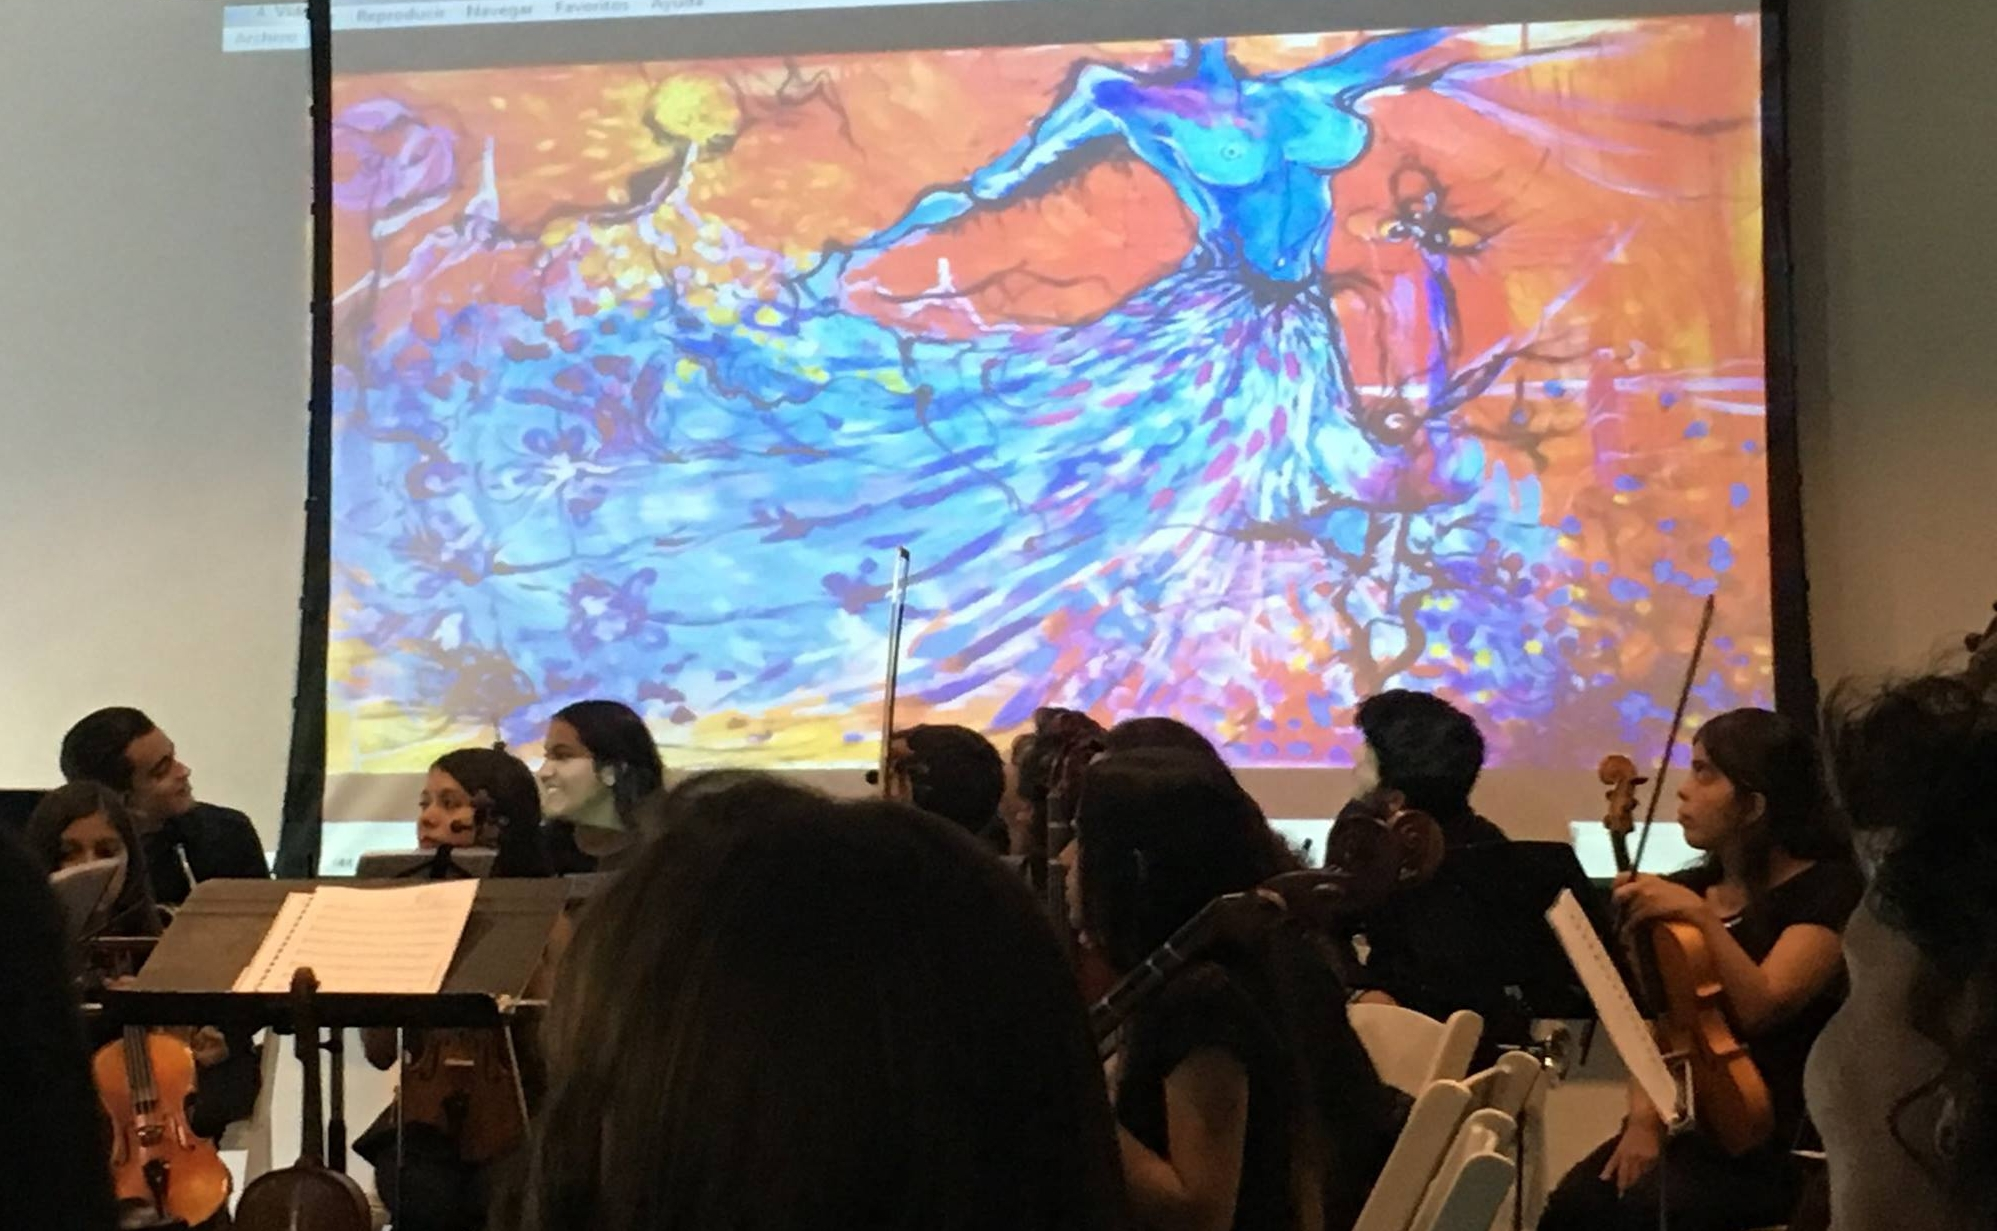 Siman Orchestra - Nicolle's art displayed during a performance of Siman Orchestral Foundation.